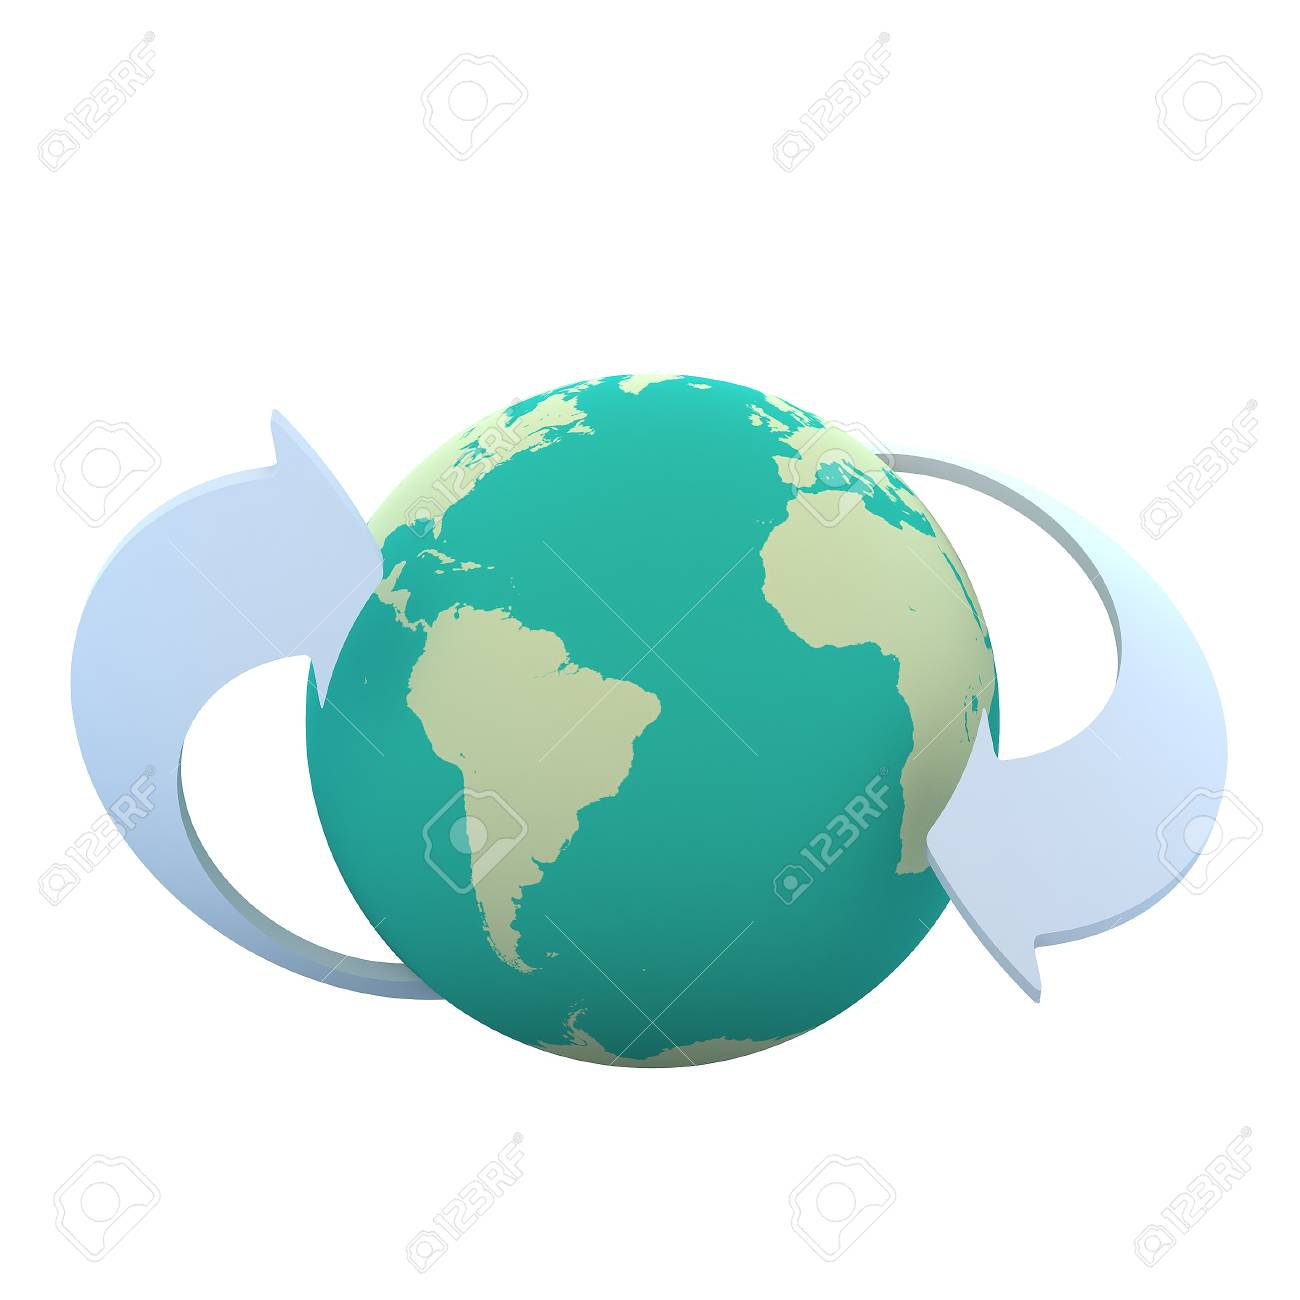 3d globe connections network design Stock Photo - 18127786